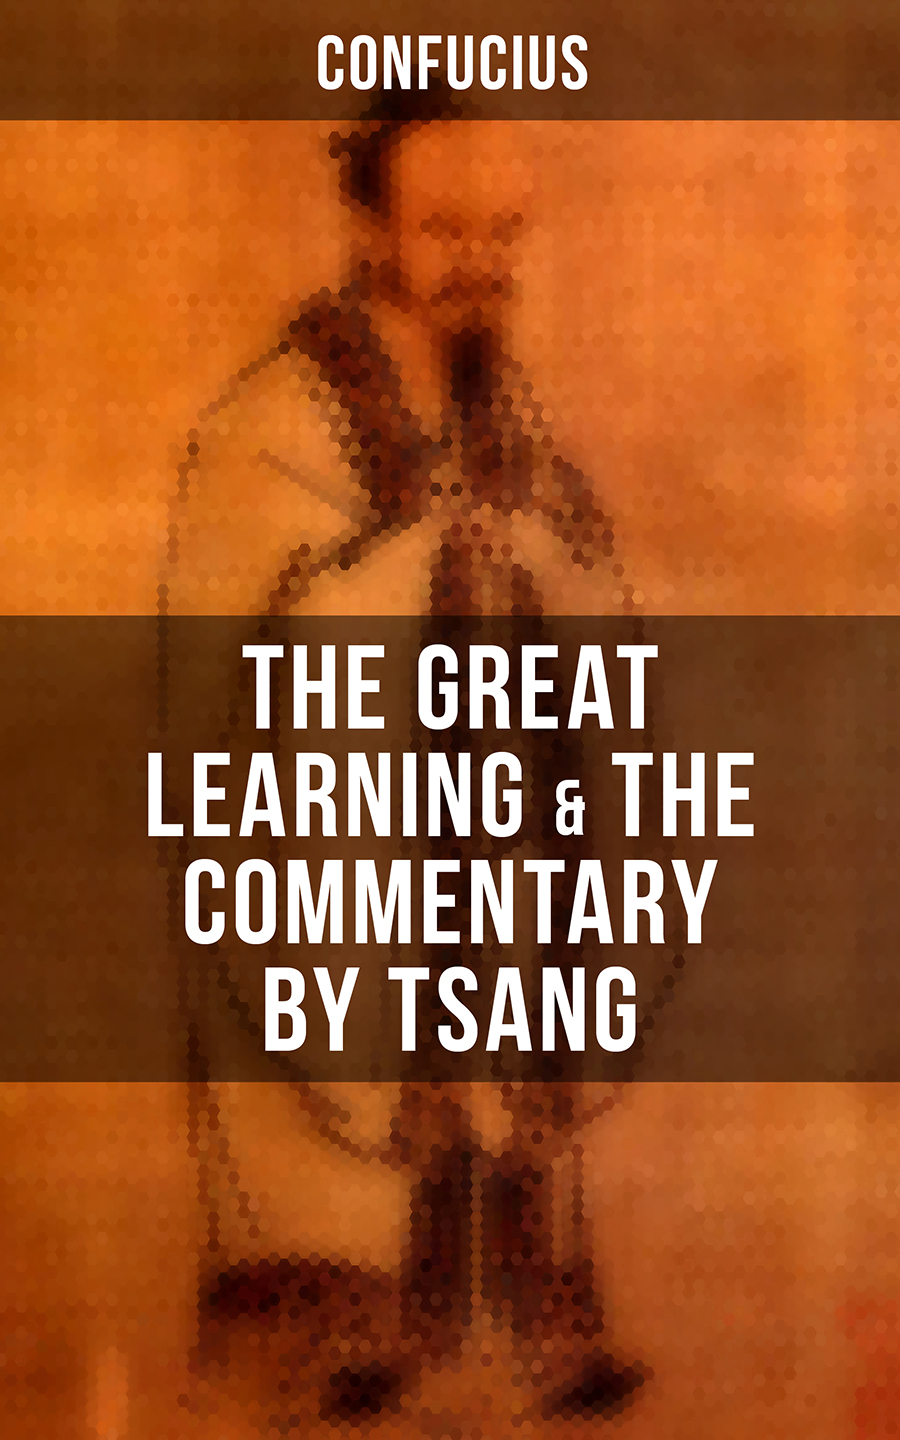 Confucius Confucius' The Great Learning & The Commentary by Tsang confucius confucius the great learning